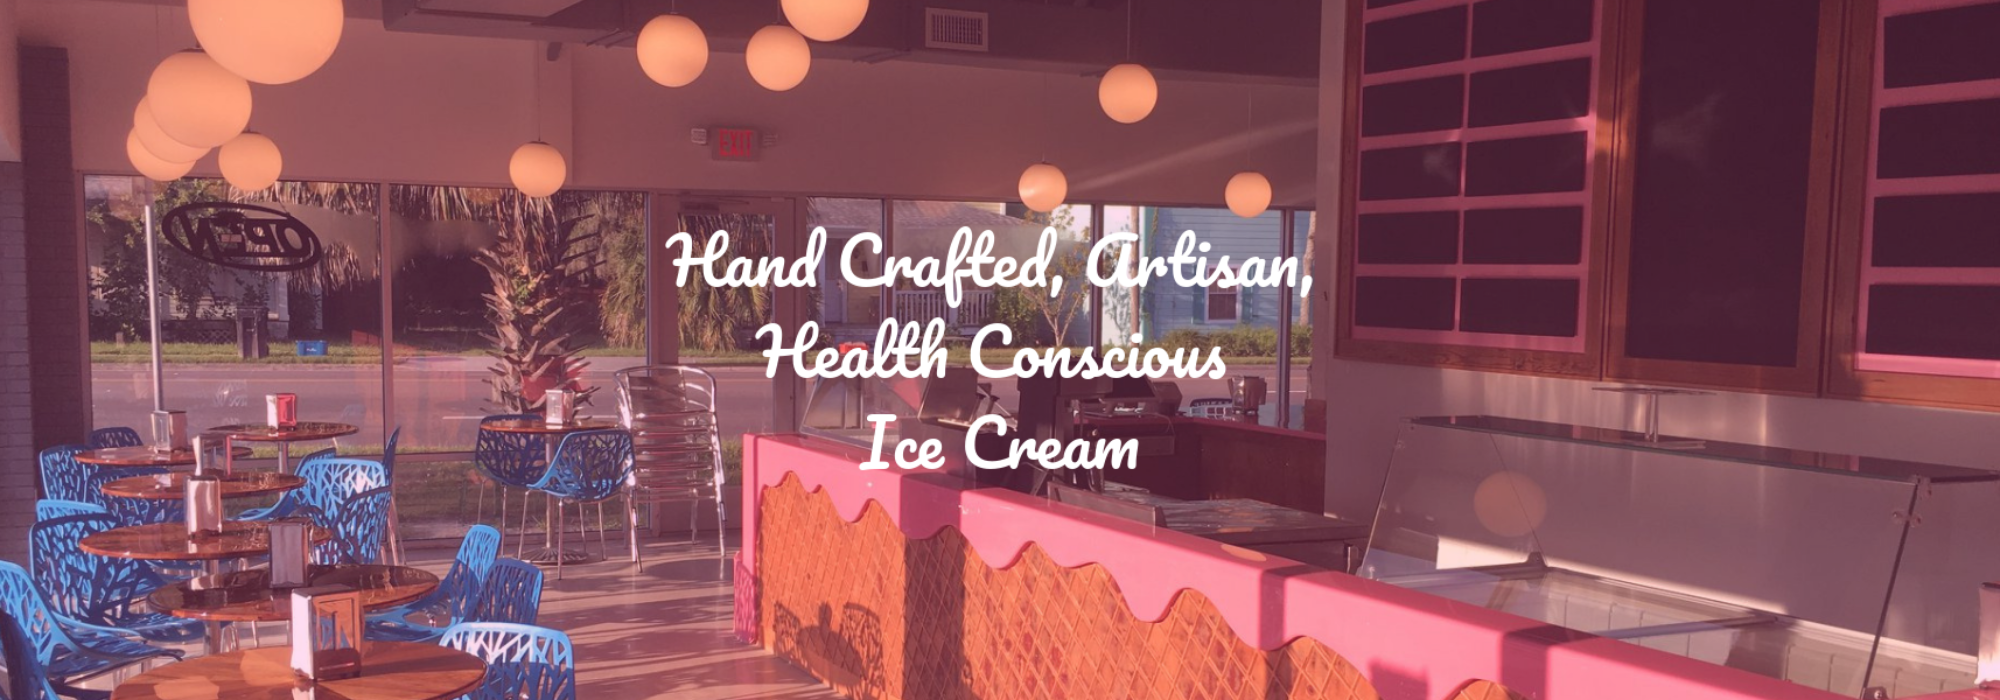 https://secureservercdn.net/198.71.233.129/g5f.0eb.myftpupload.com/wp-content/uploads/2019/08/Hand-Crafted-Artisan-Health-Conscious-Ice-Cream-2000x700.png